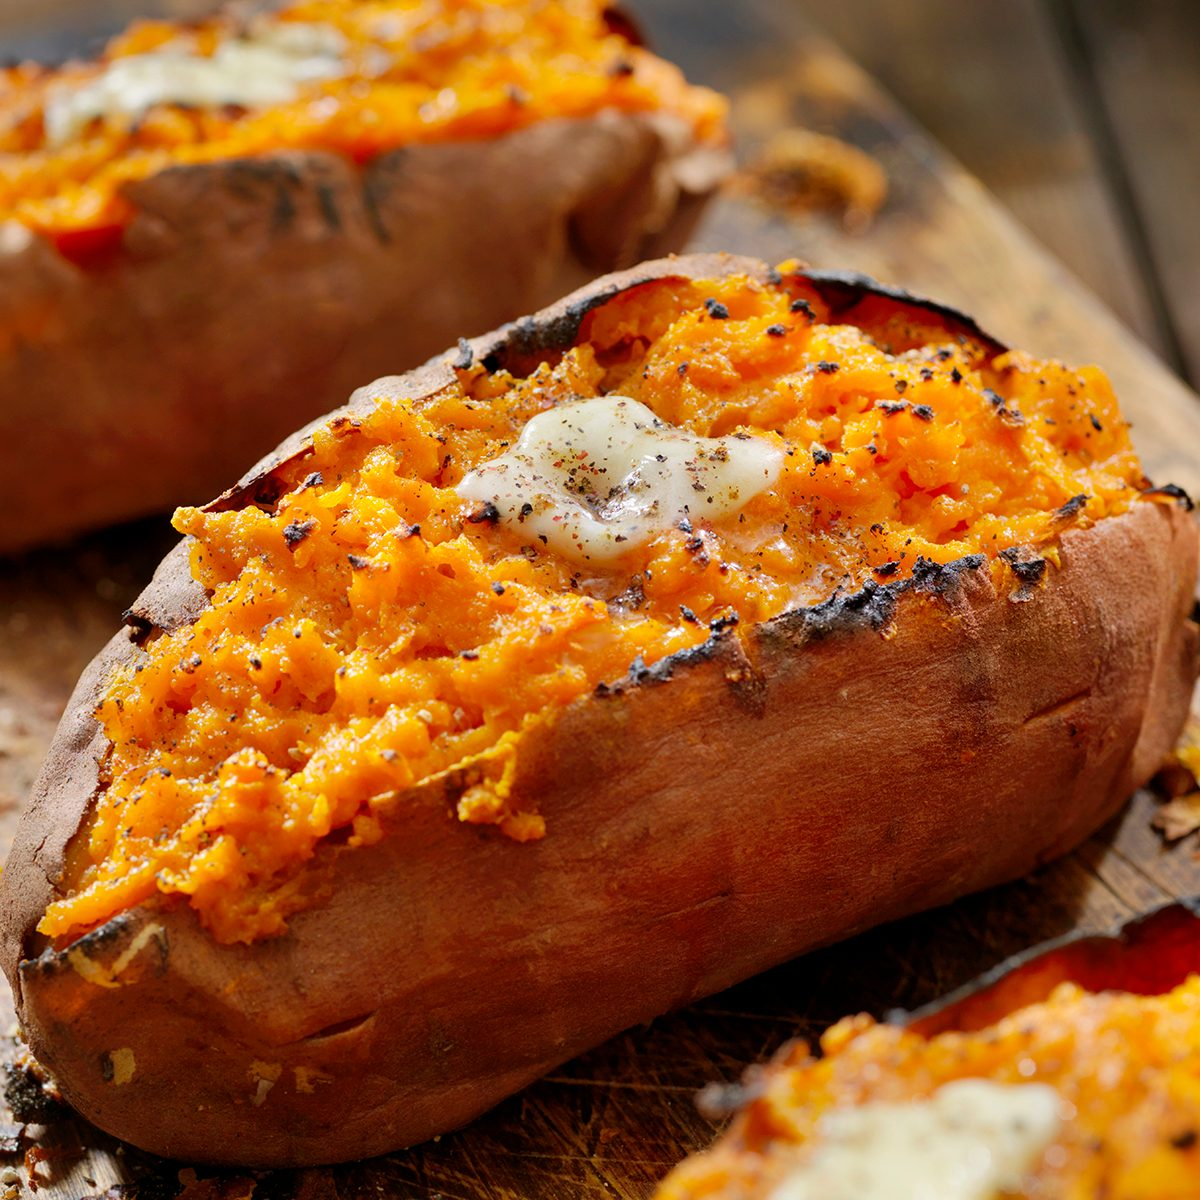 Twice Baked, Stuffed Sweet Potatoes with Melting Butter and Cracked Pepper